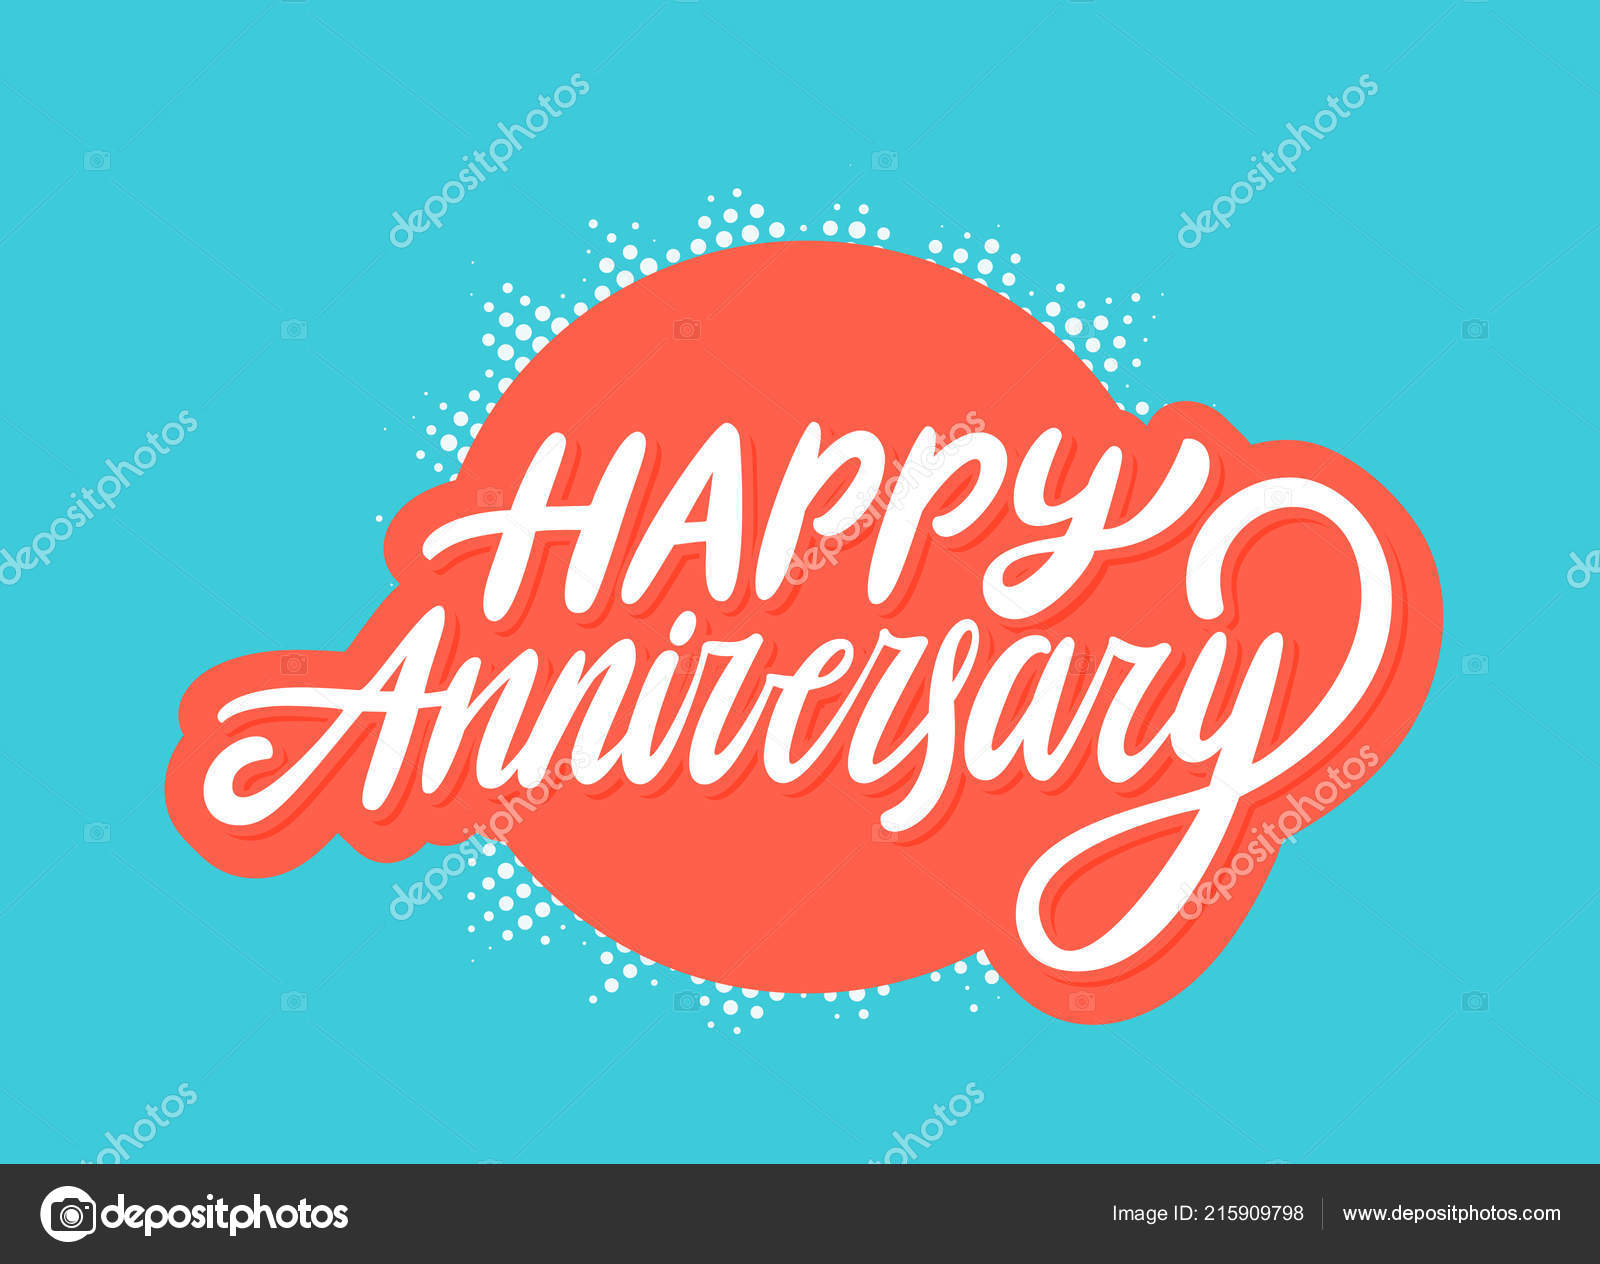 Happy Anniversary Greeting Card Stock Vector Alexgorka 215909798